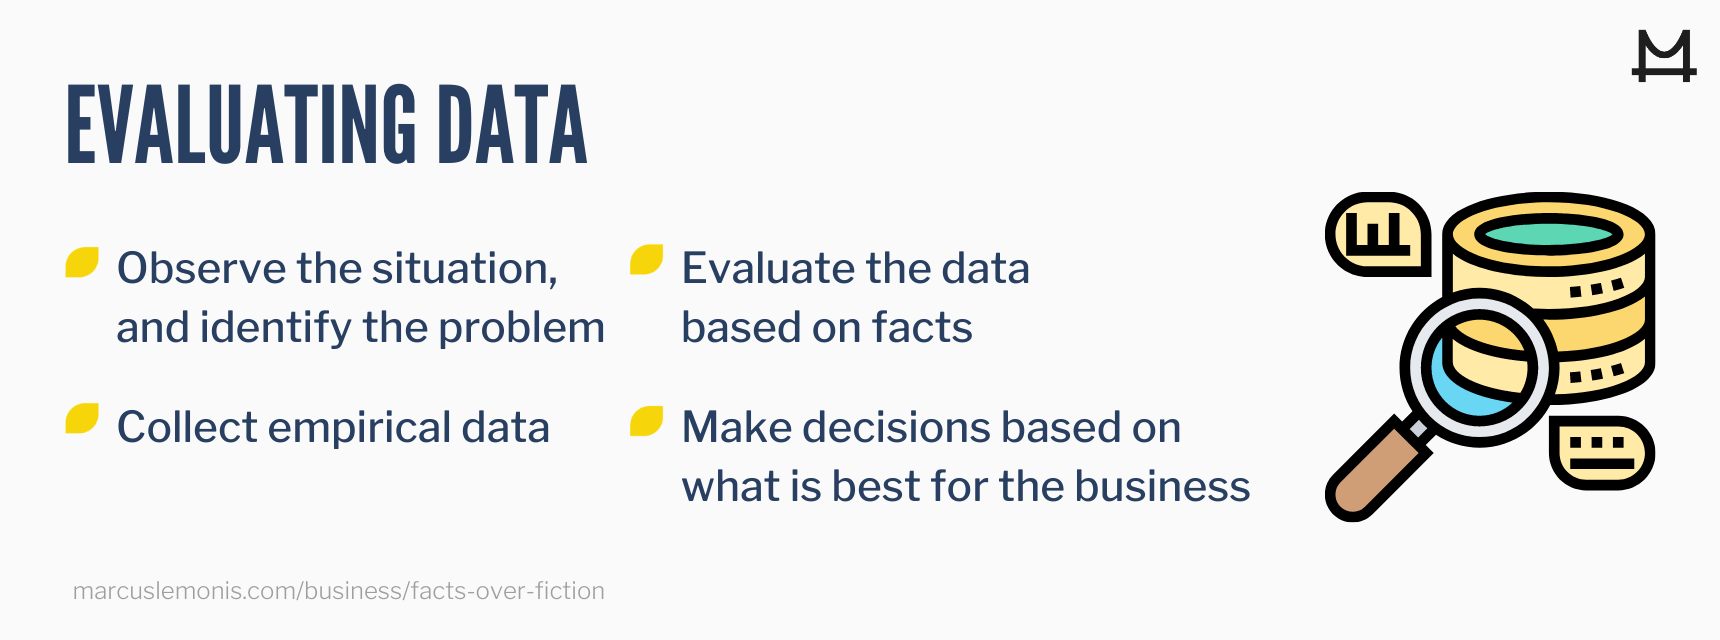 Steps to evaluating data.